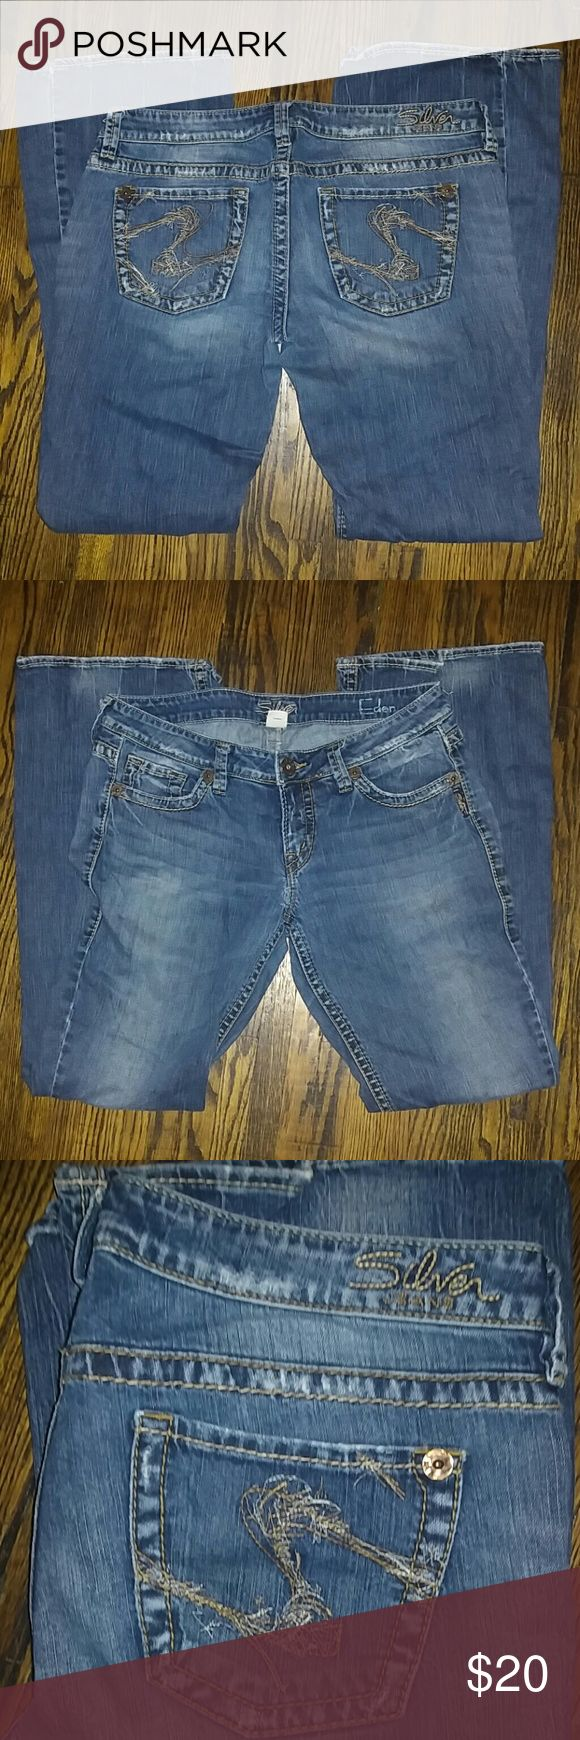 Women&39s Silver Jeans 32x35 | The end Shape and Silver jeans